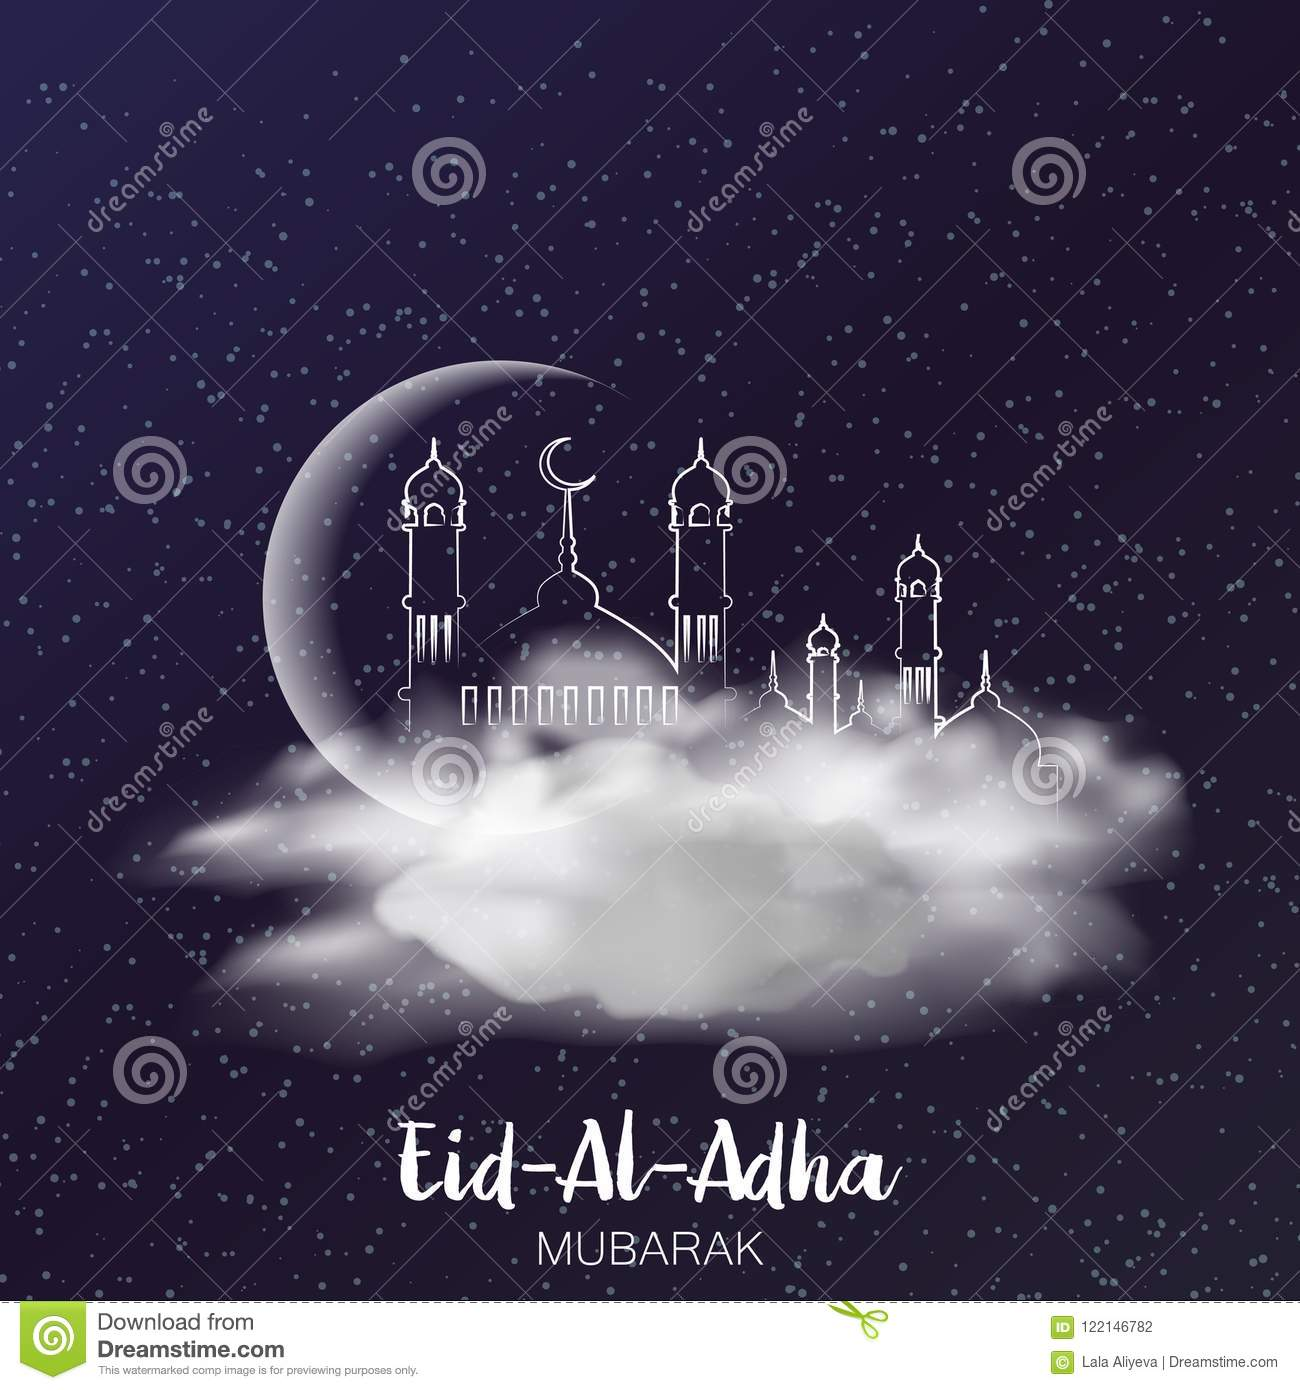 Eid Al Adha Mubarak Greeting Card With Crescent And Clouds In Sky